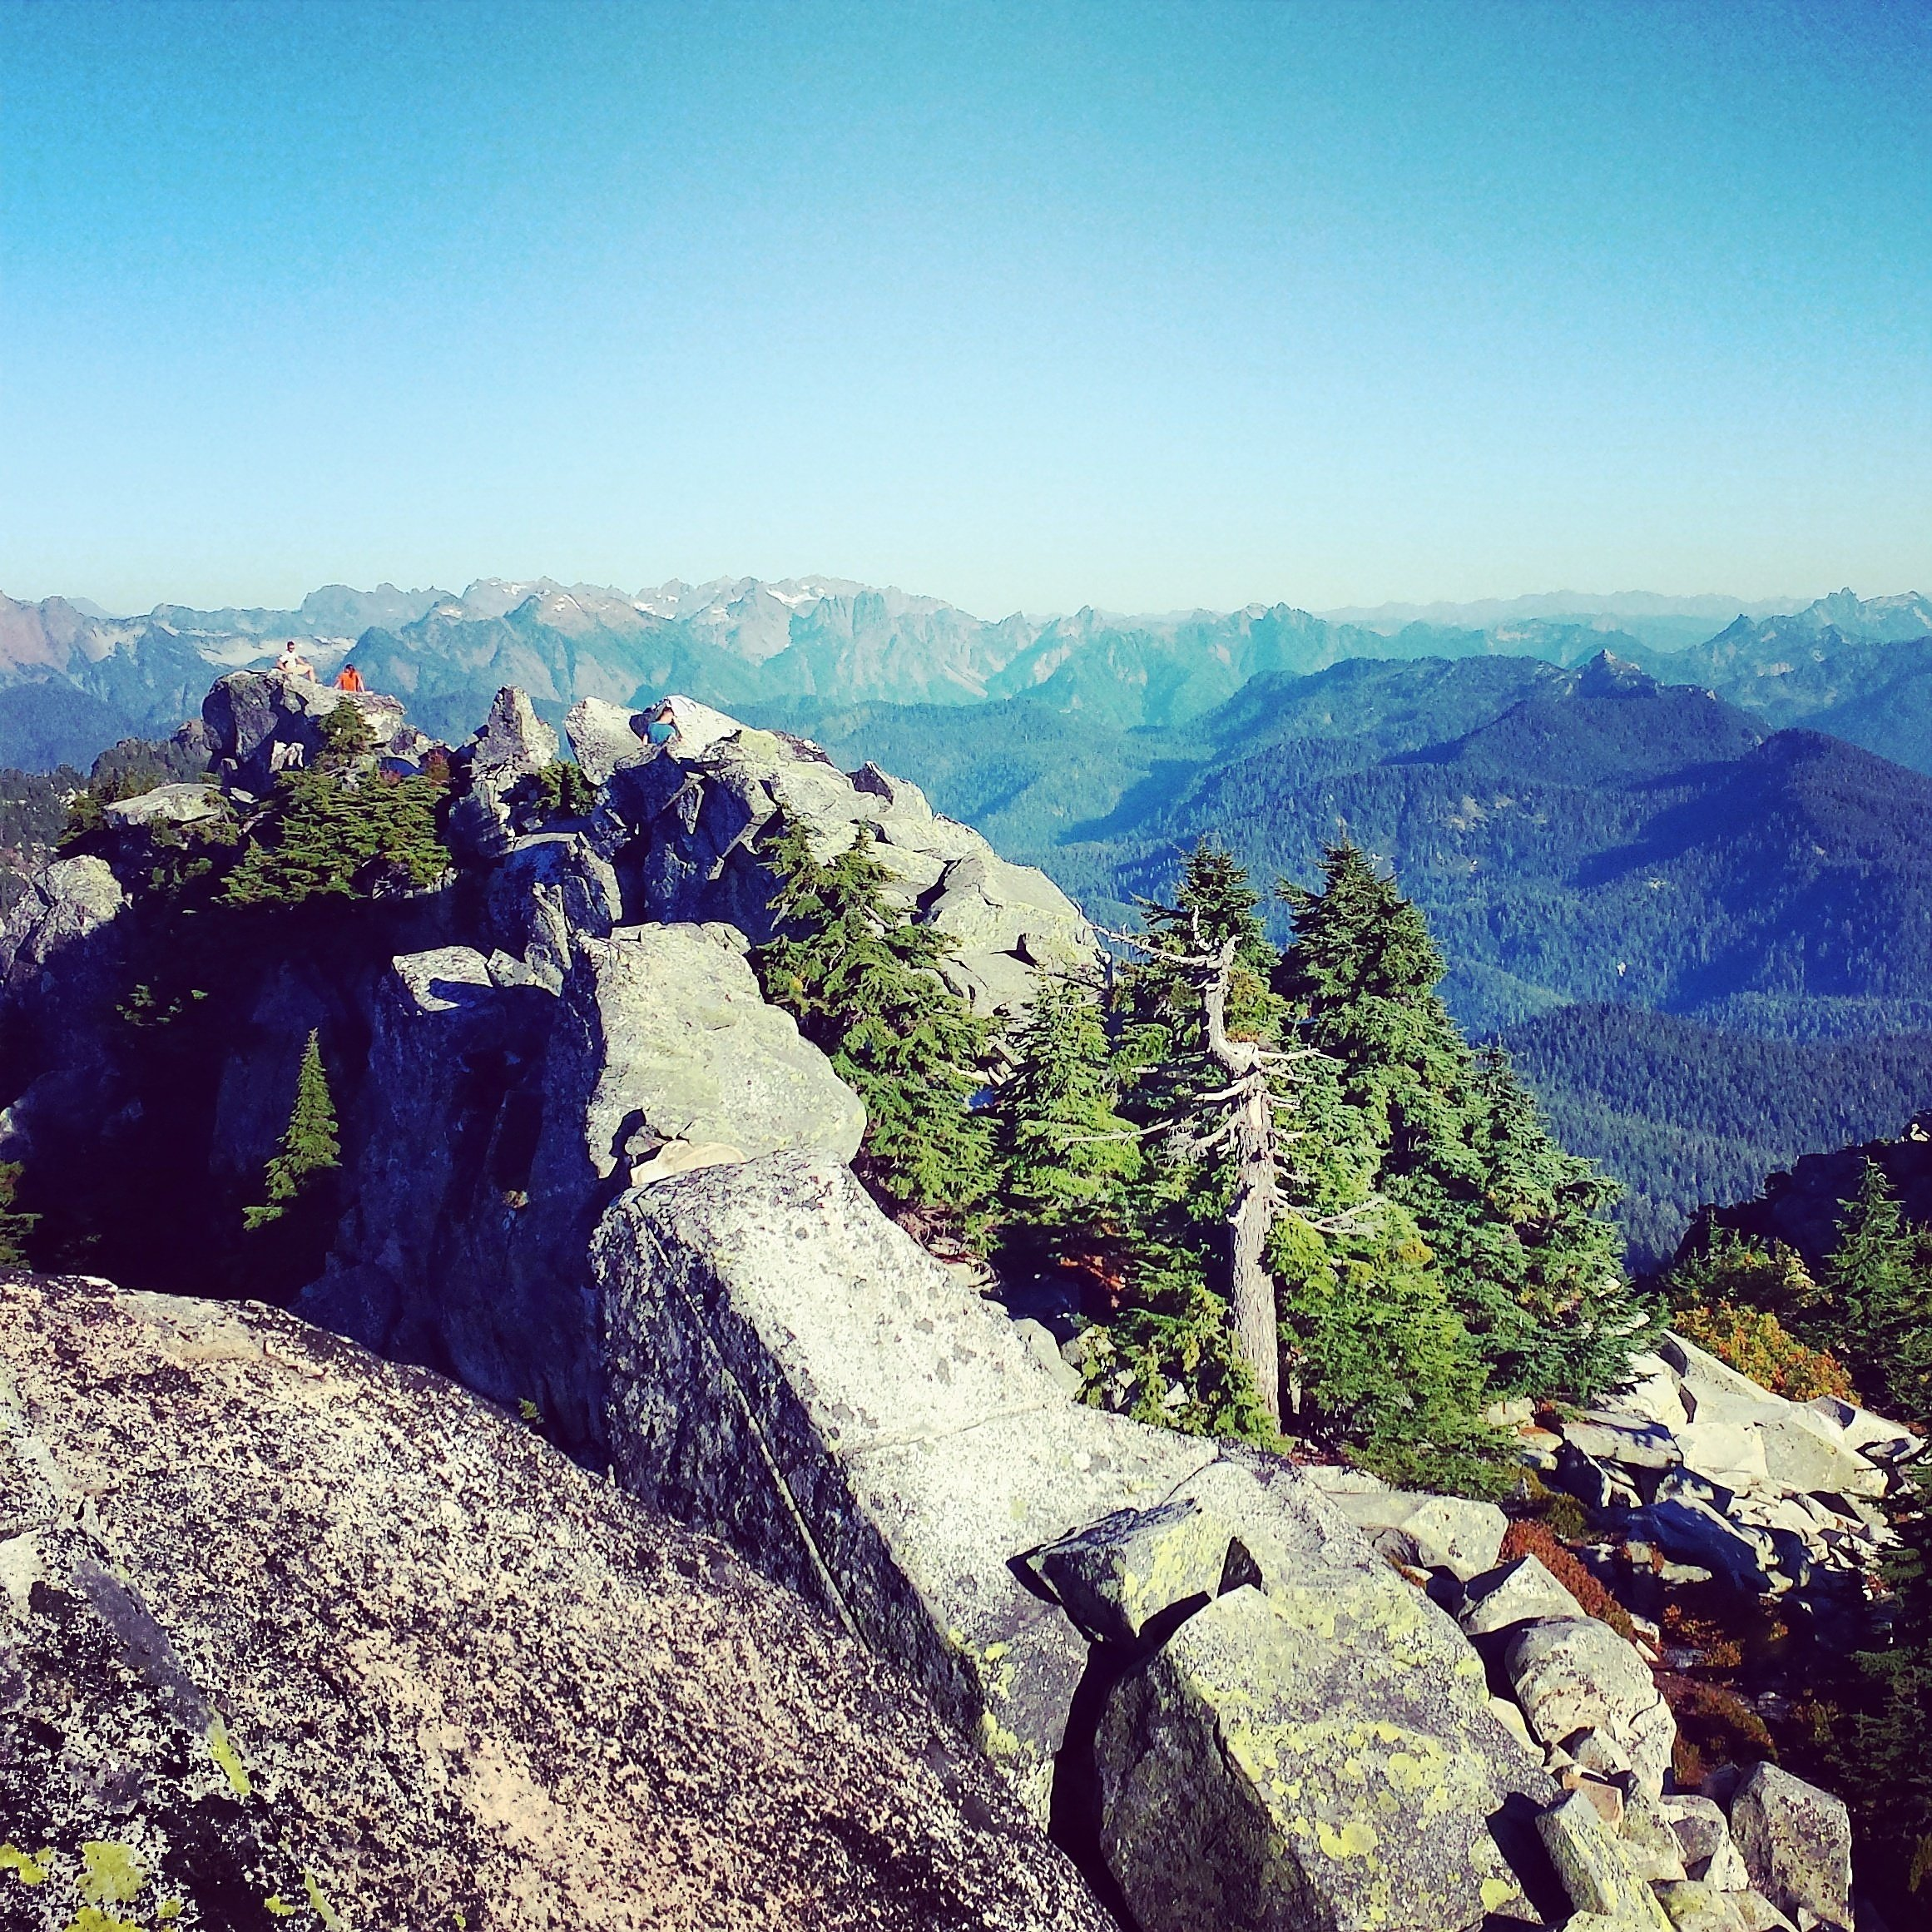 Photo Journal Mount Pilchuck, WA by Sabrina Brett 3